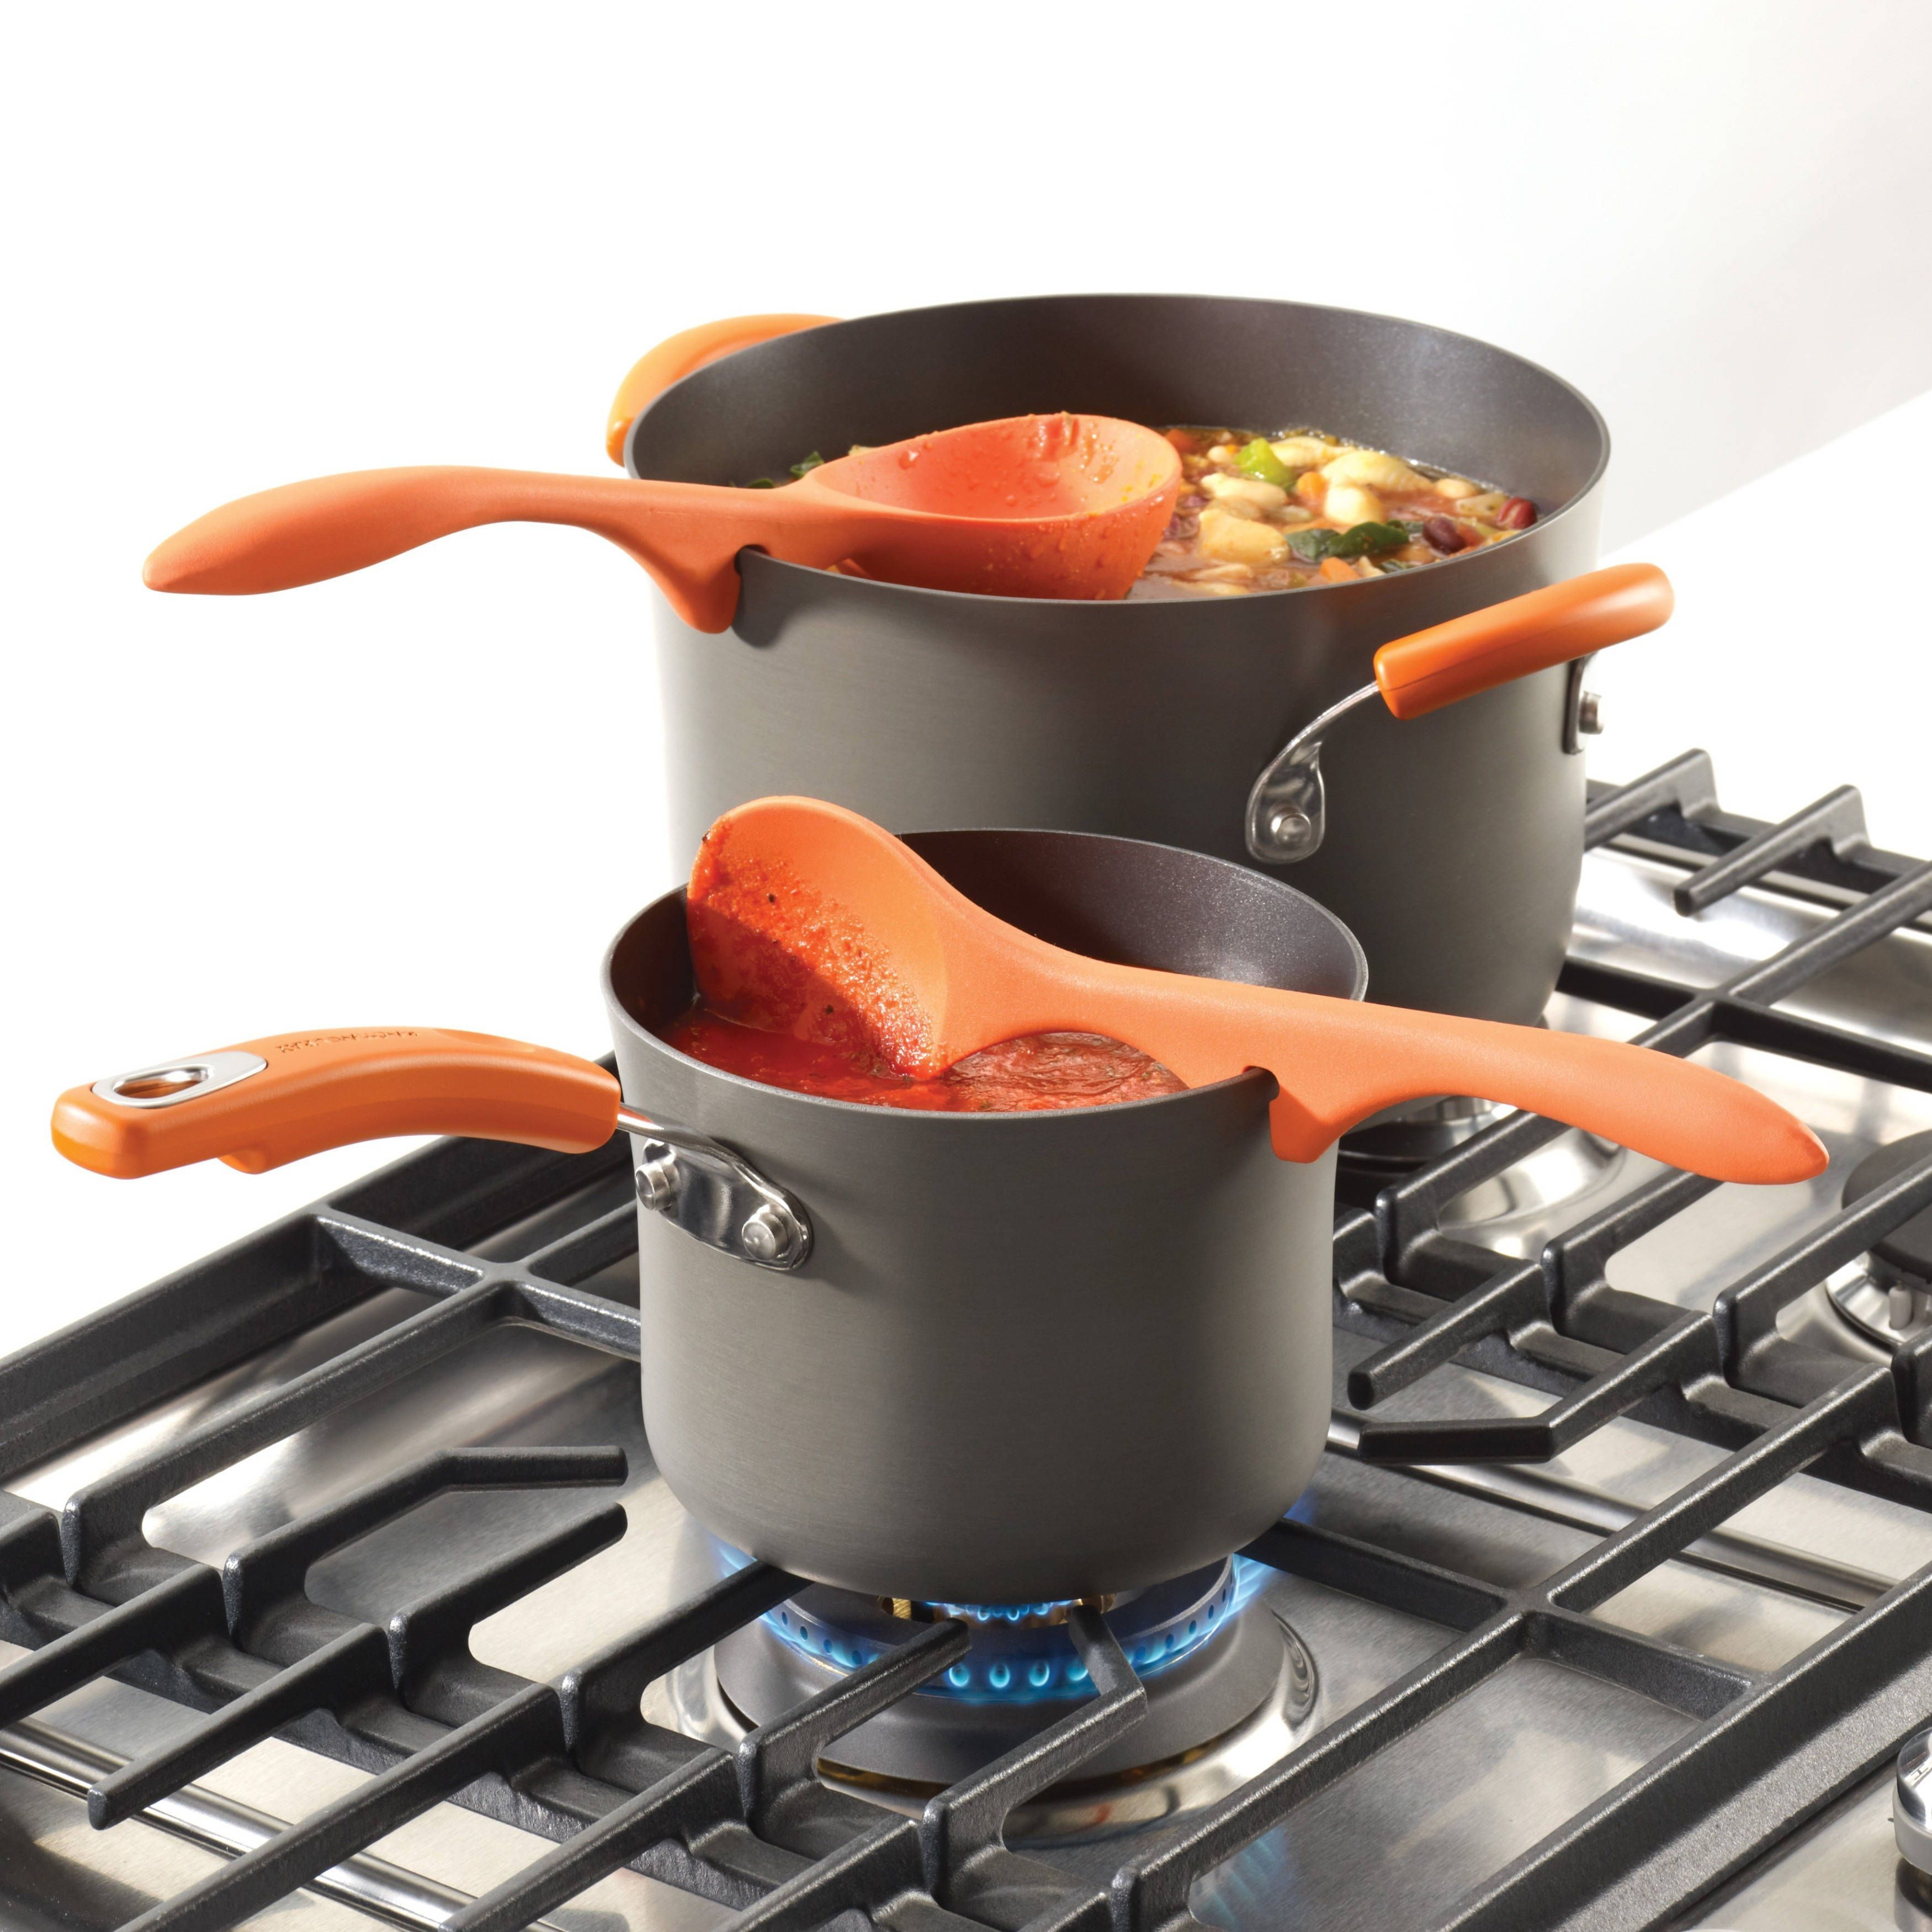 Rachael Ray Tools And Gadgets 2 Piece Orange Lazy Tools